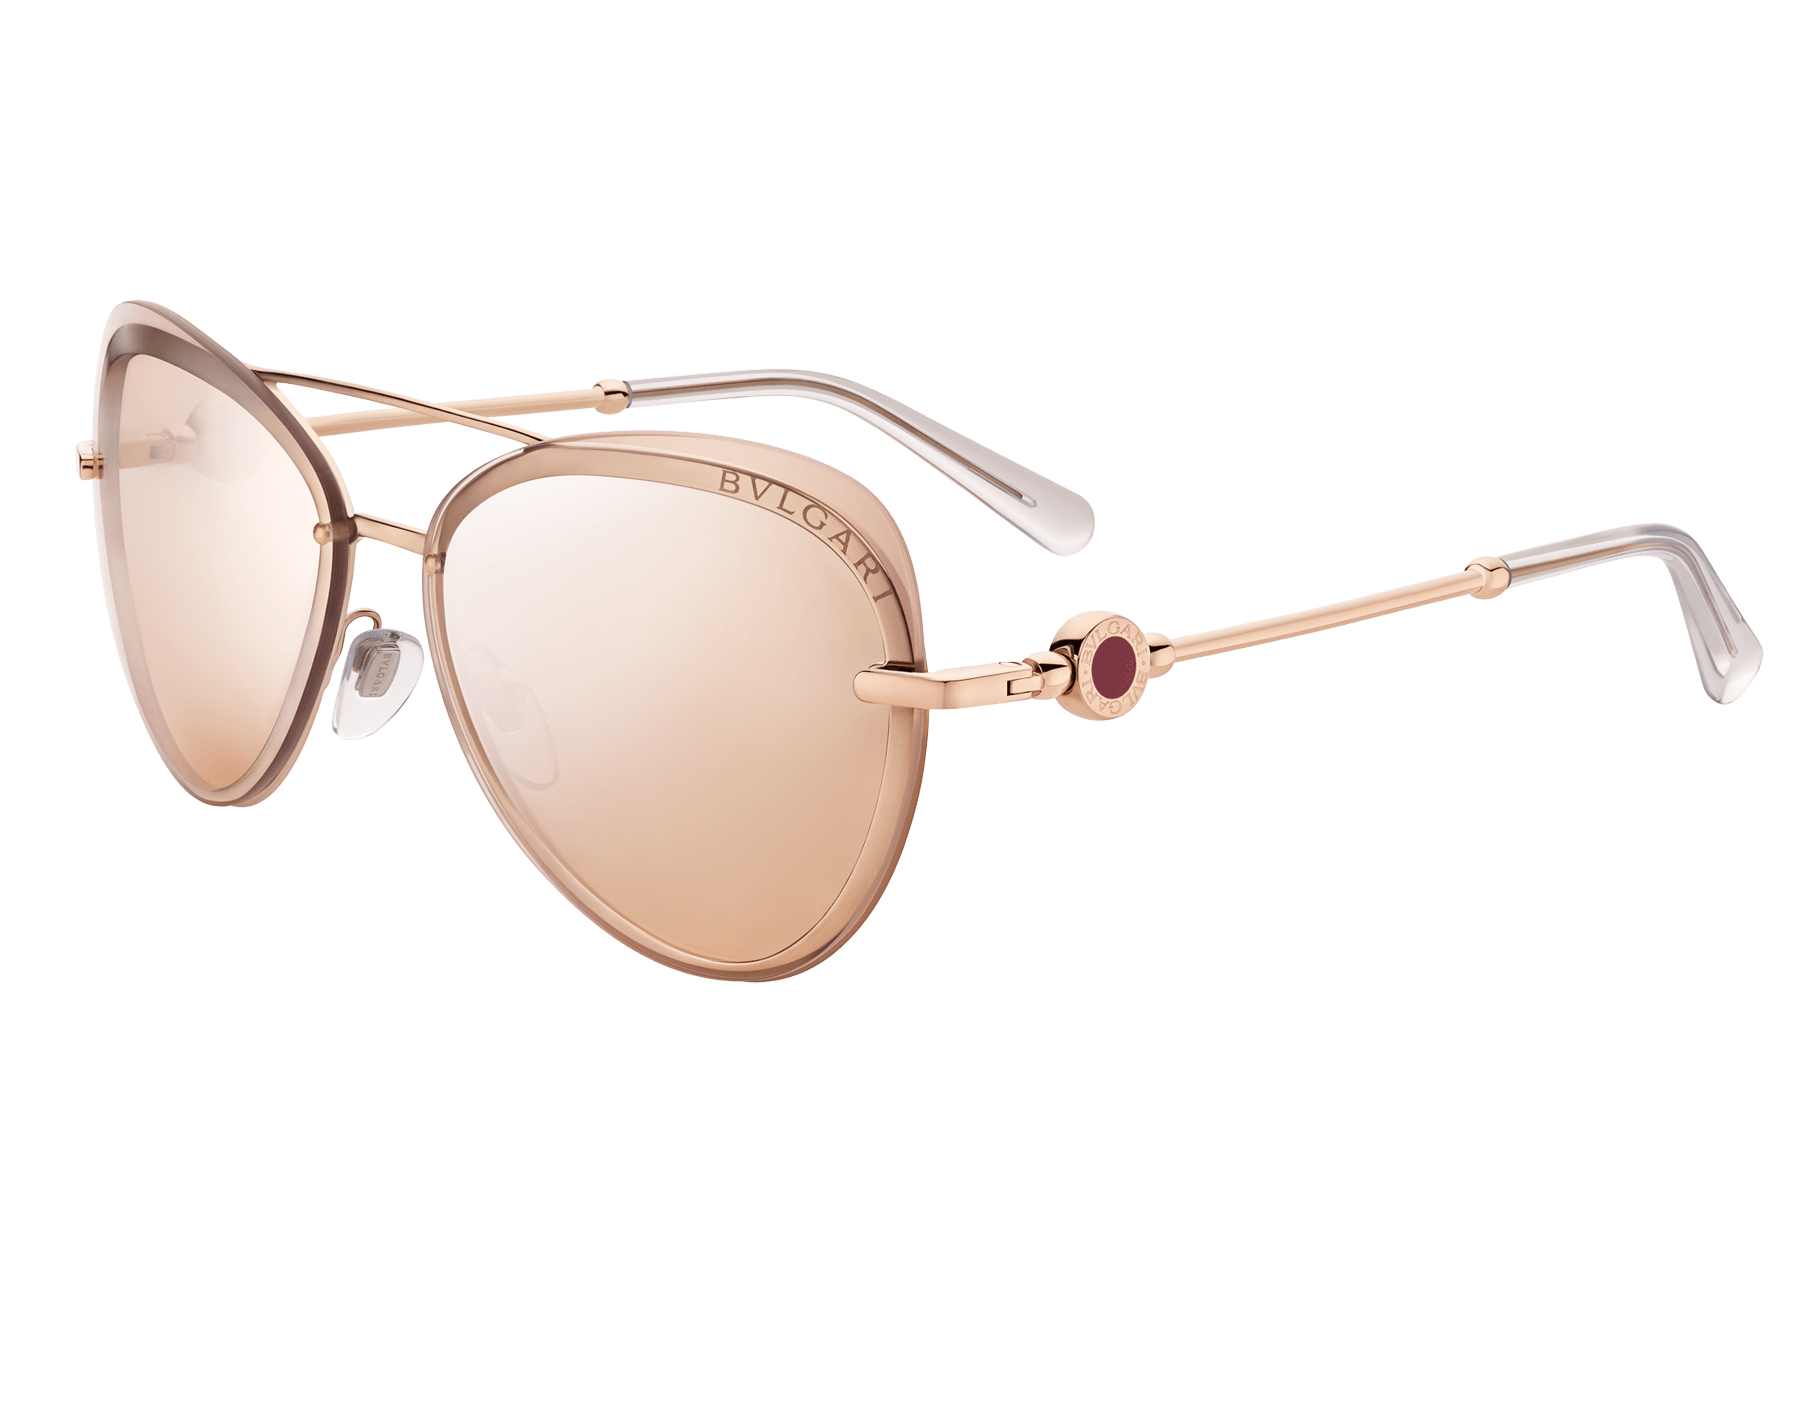 "Bvlgari Bvlgari ""On Me"" metal aviator sunglasses 904080 image 1"